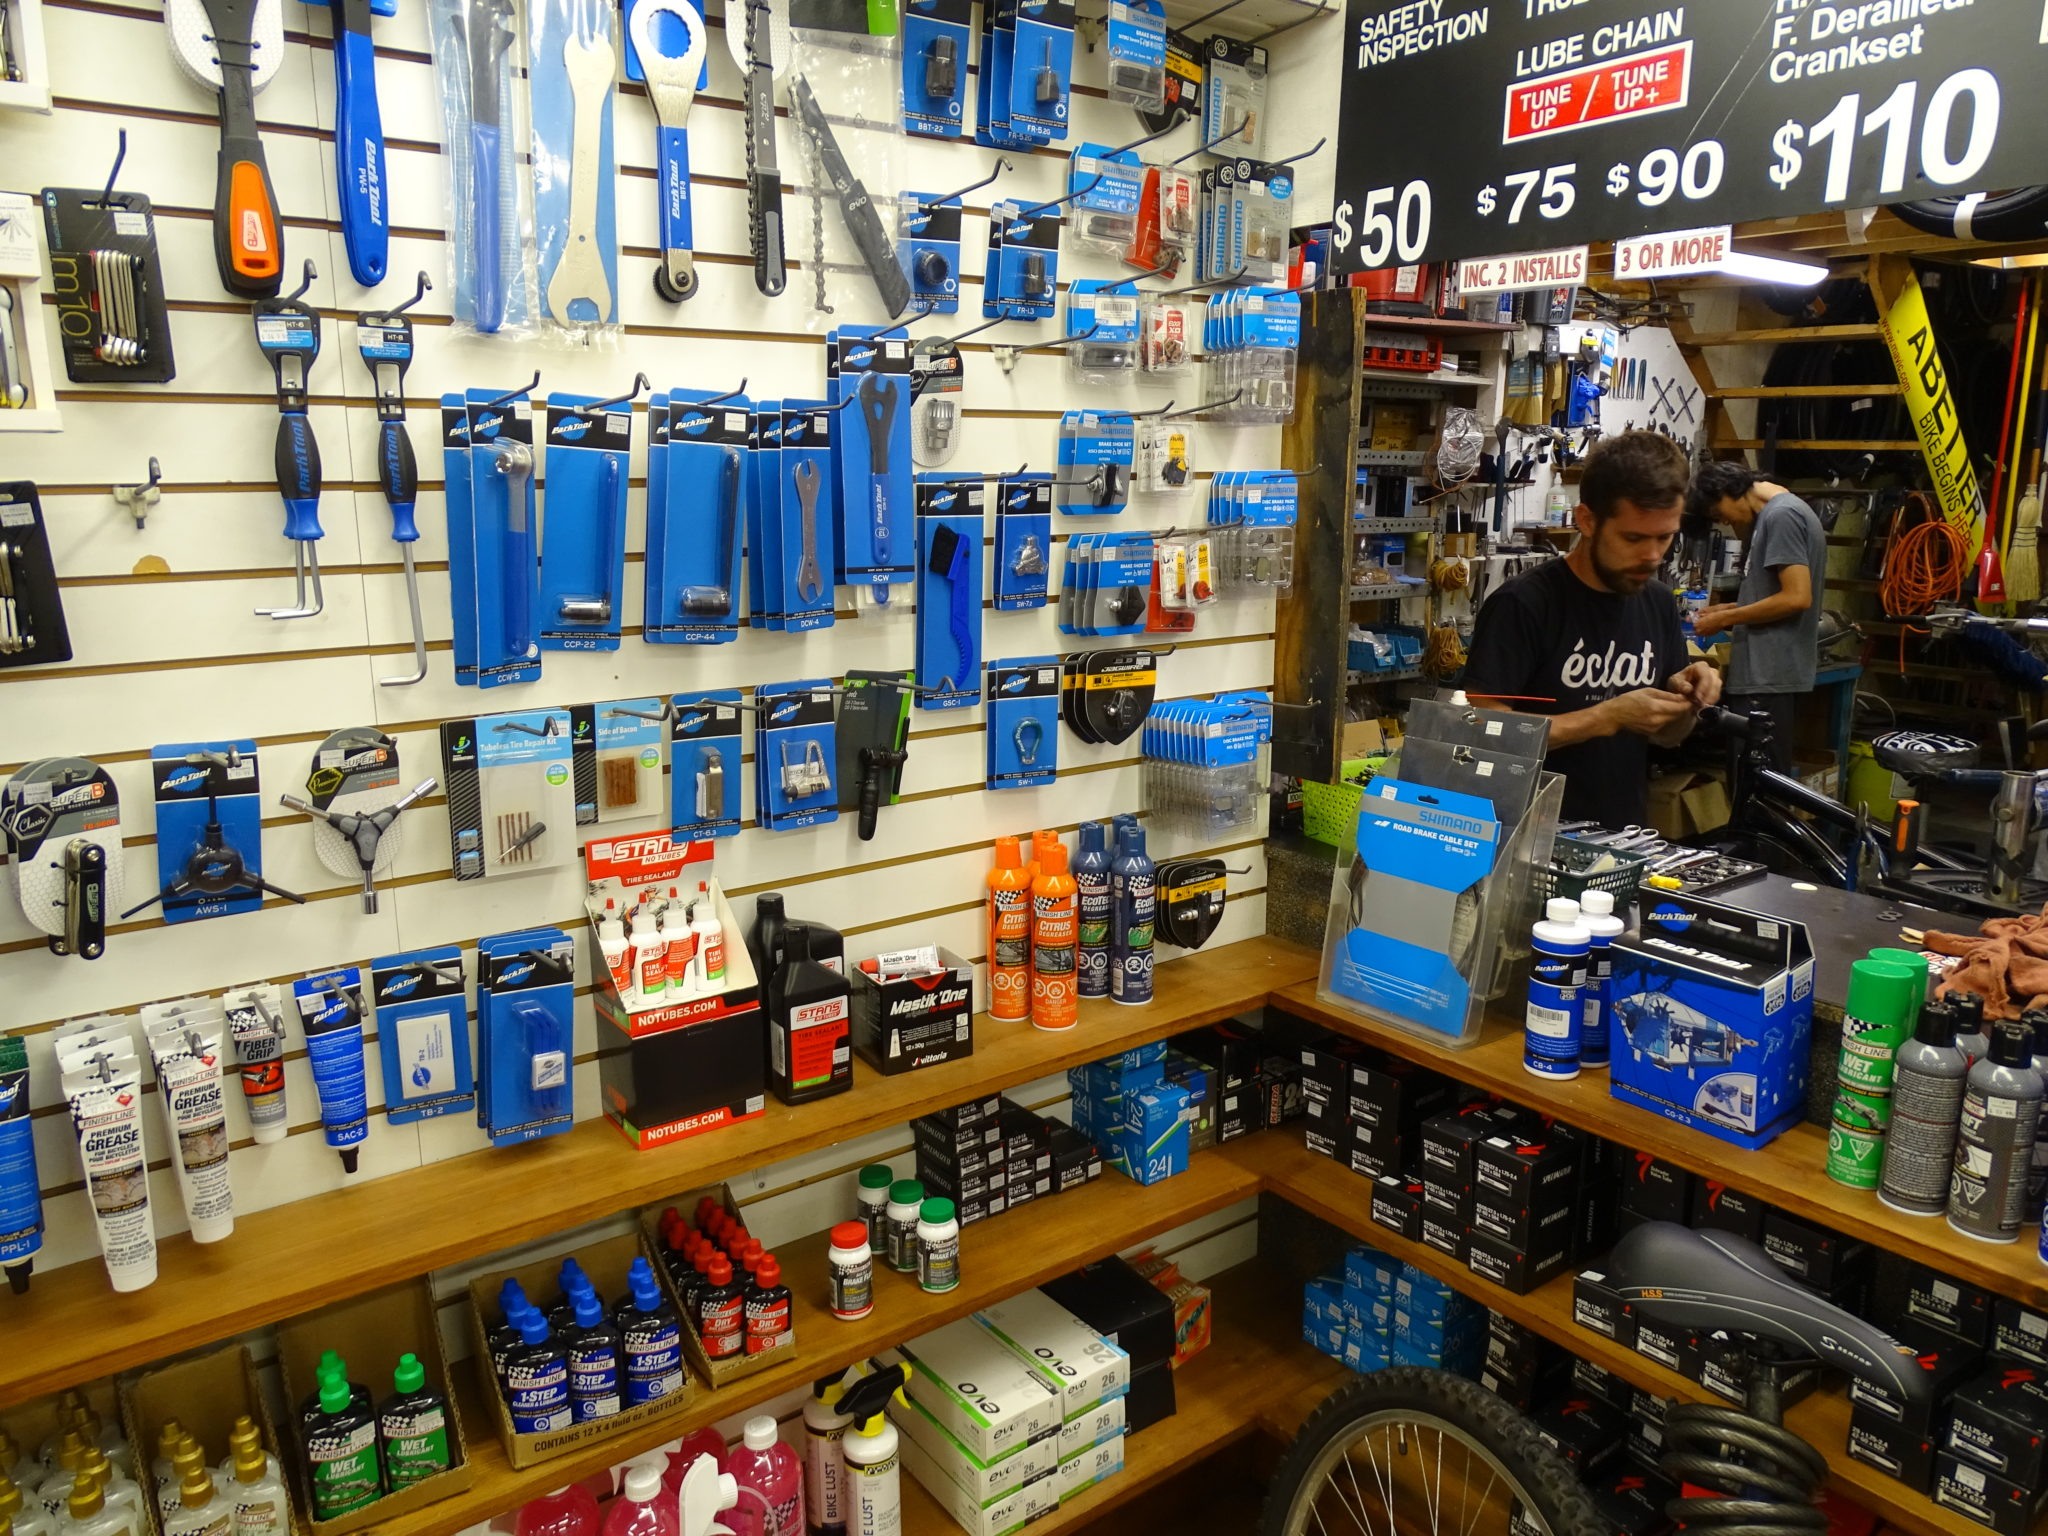 Tool and Lube Wall